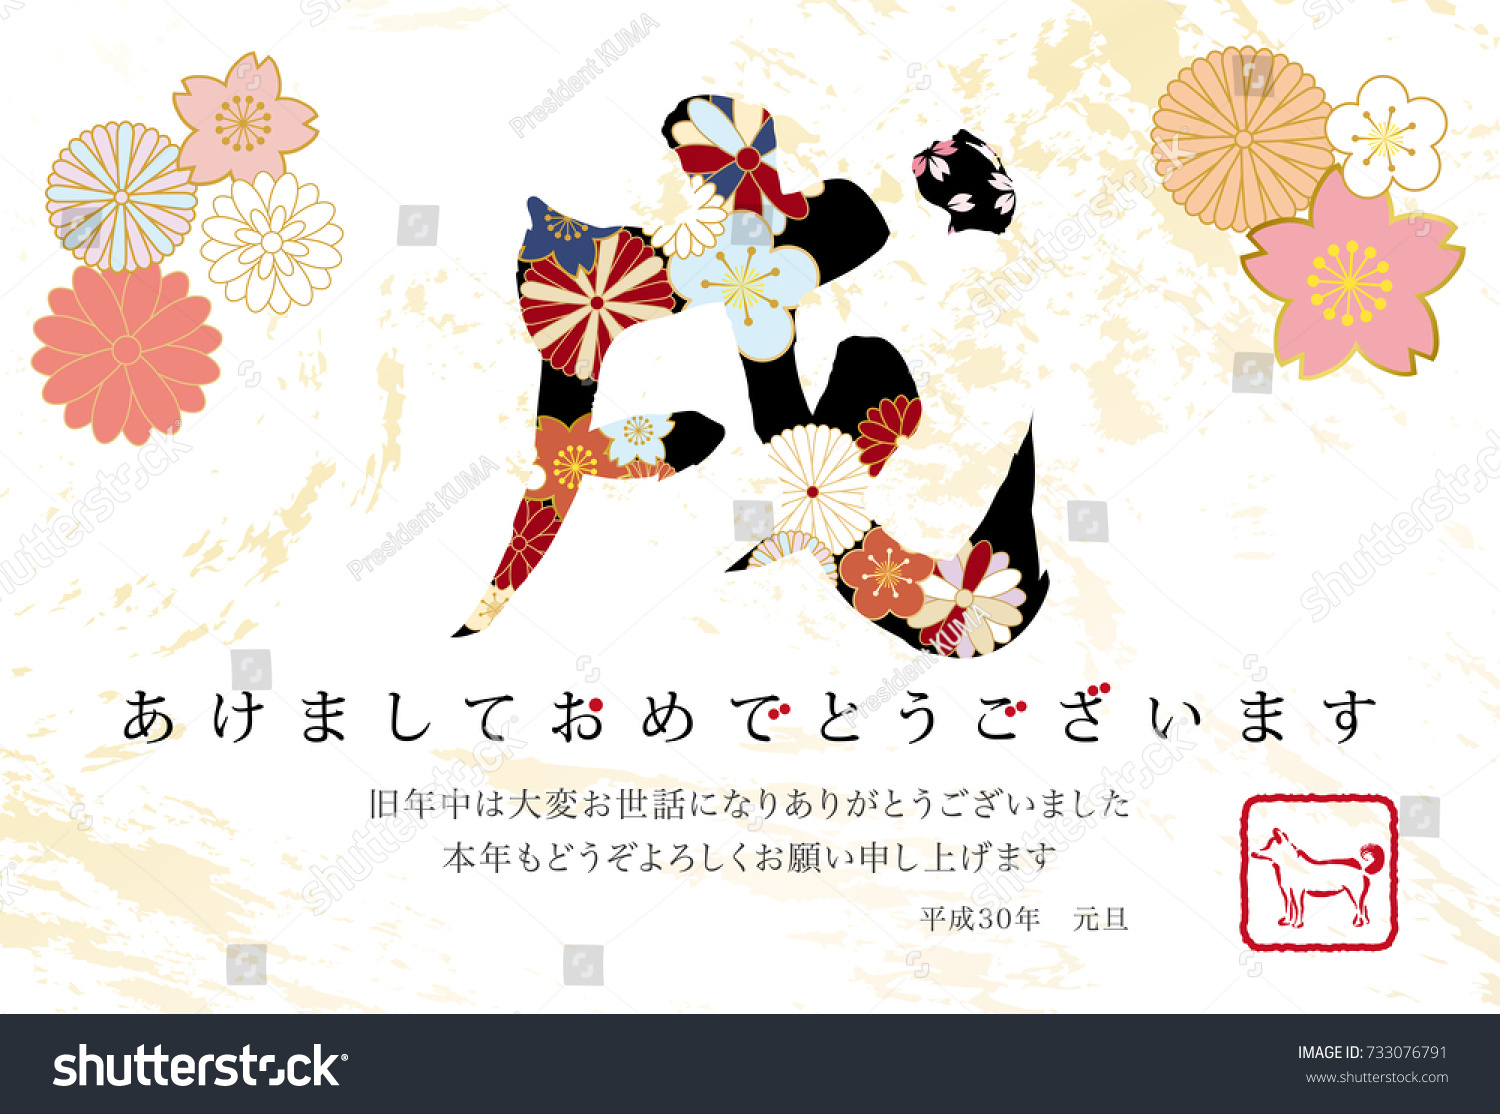 how to say happy new year japanese